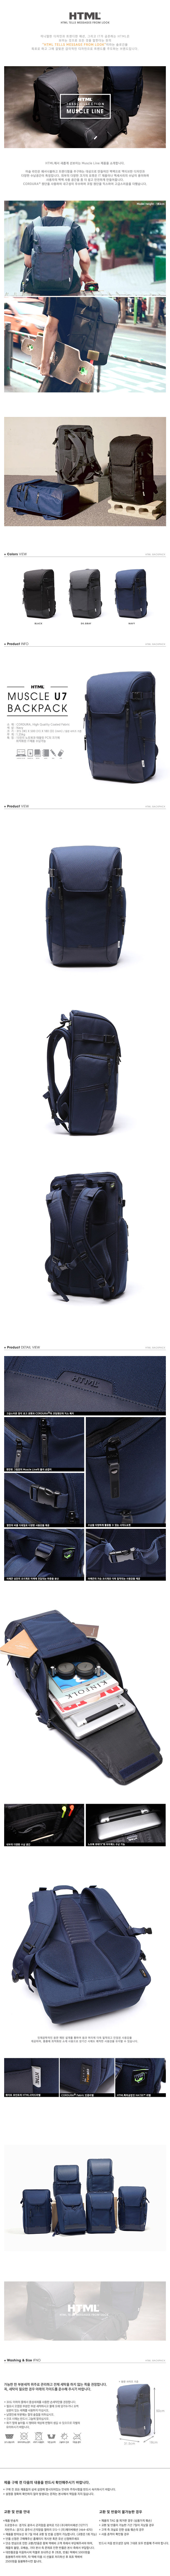 [에이치티엠엘]HTML - Muscle U7 Backpack (NAVY) 백팩